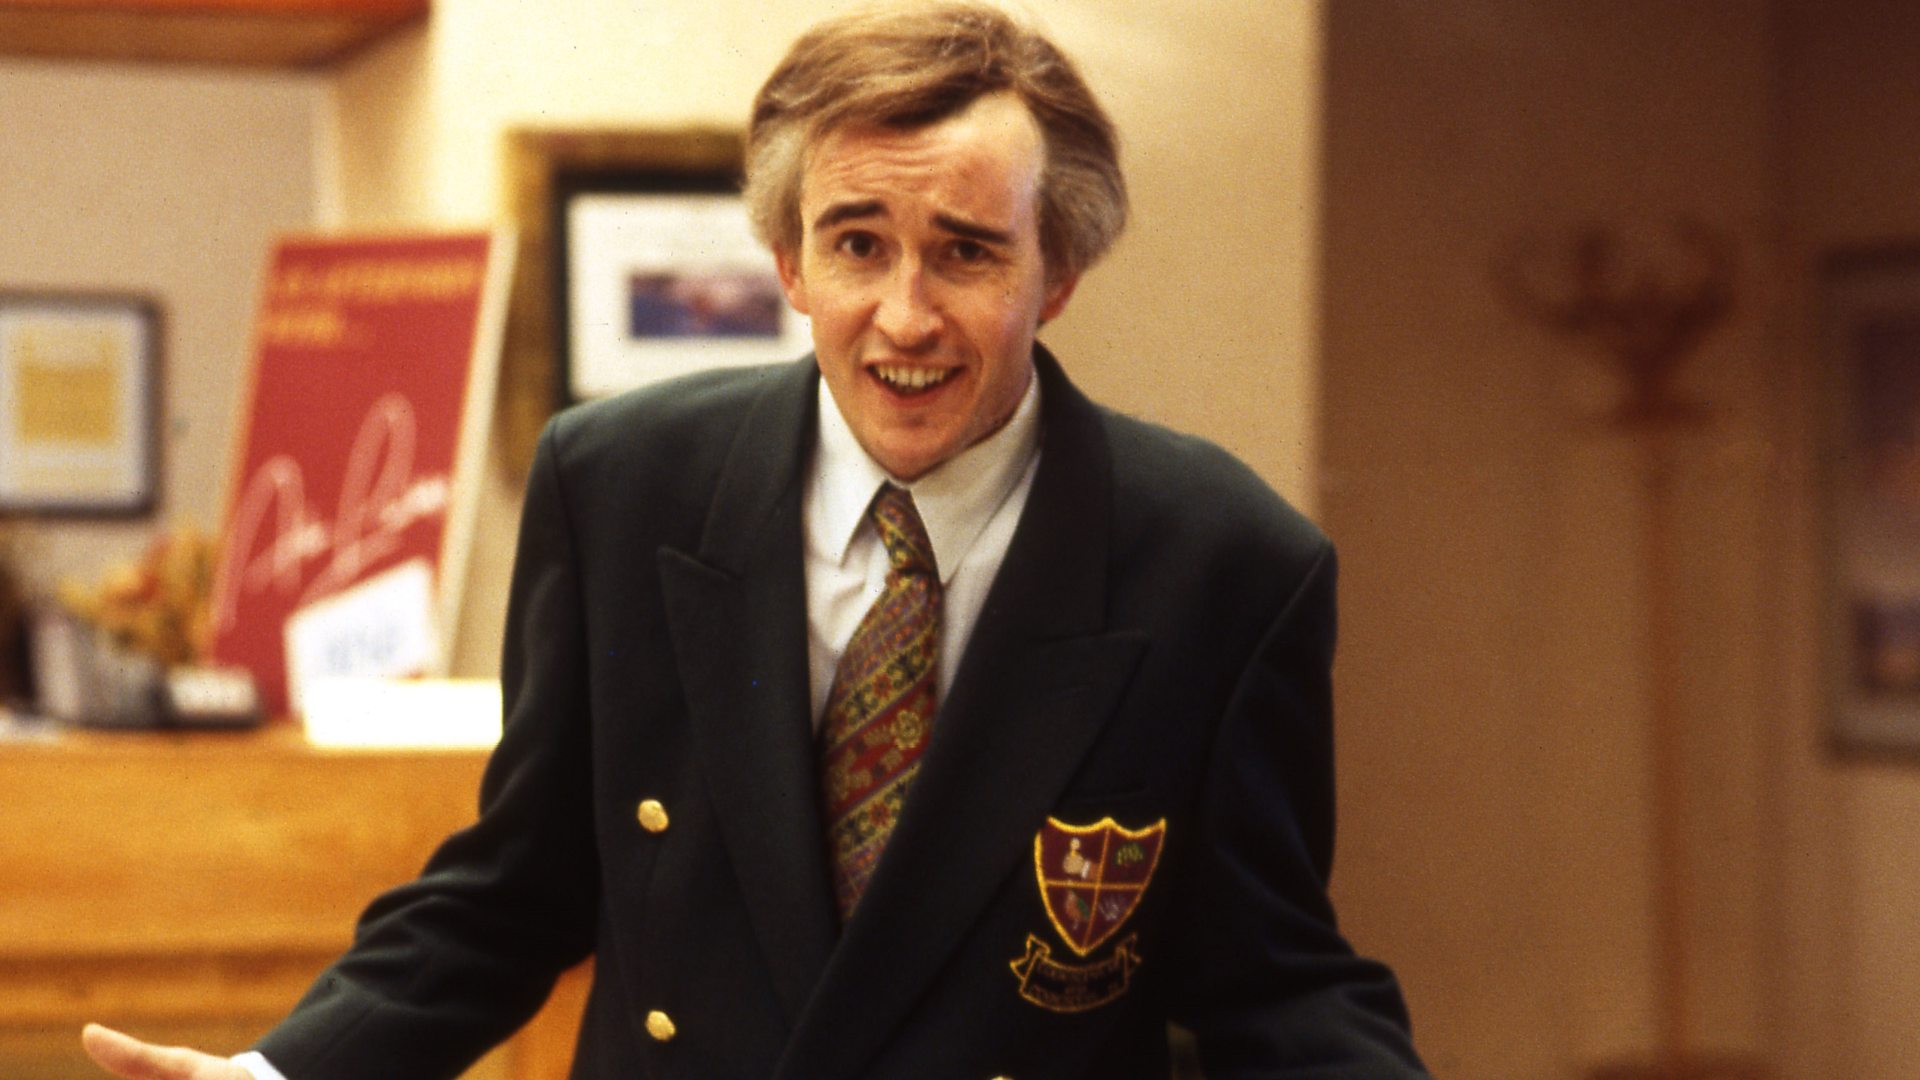 Alan Partridge delivers his ode to The Working Classes on National Poetry Day